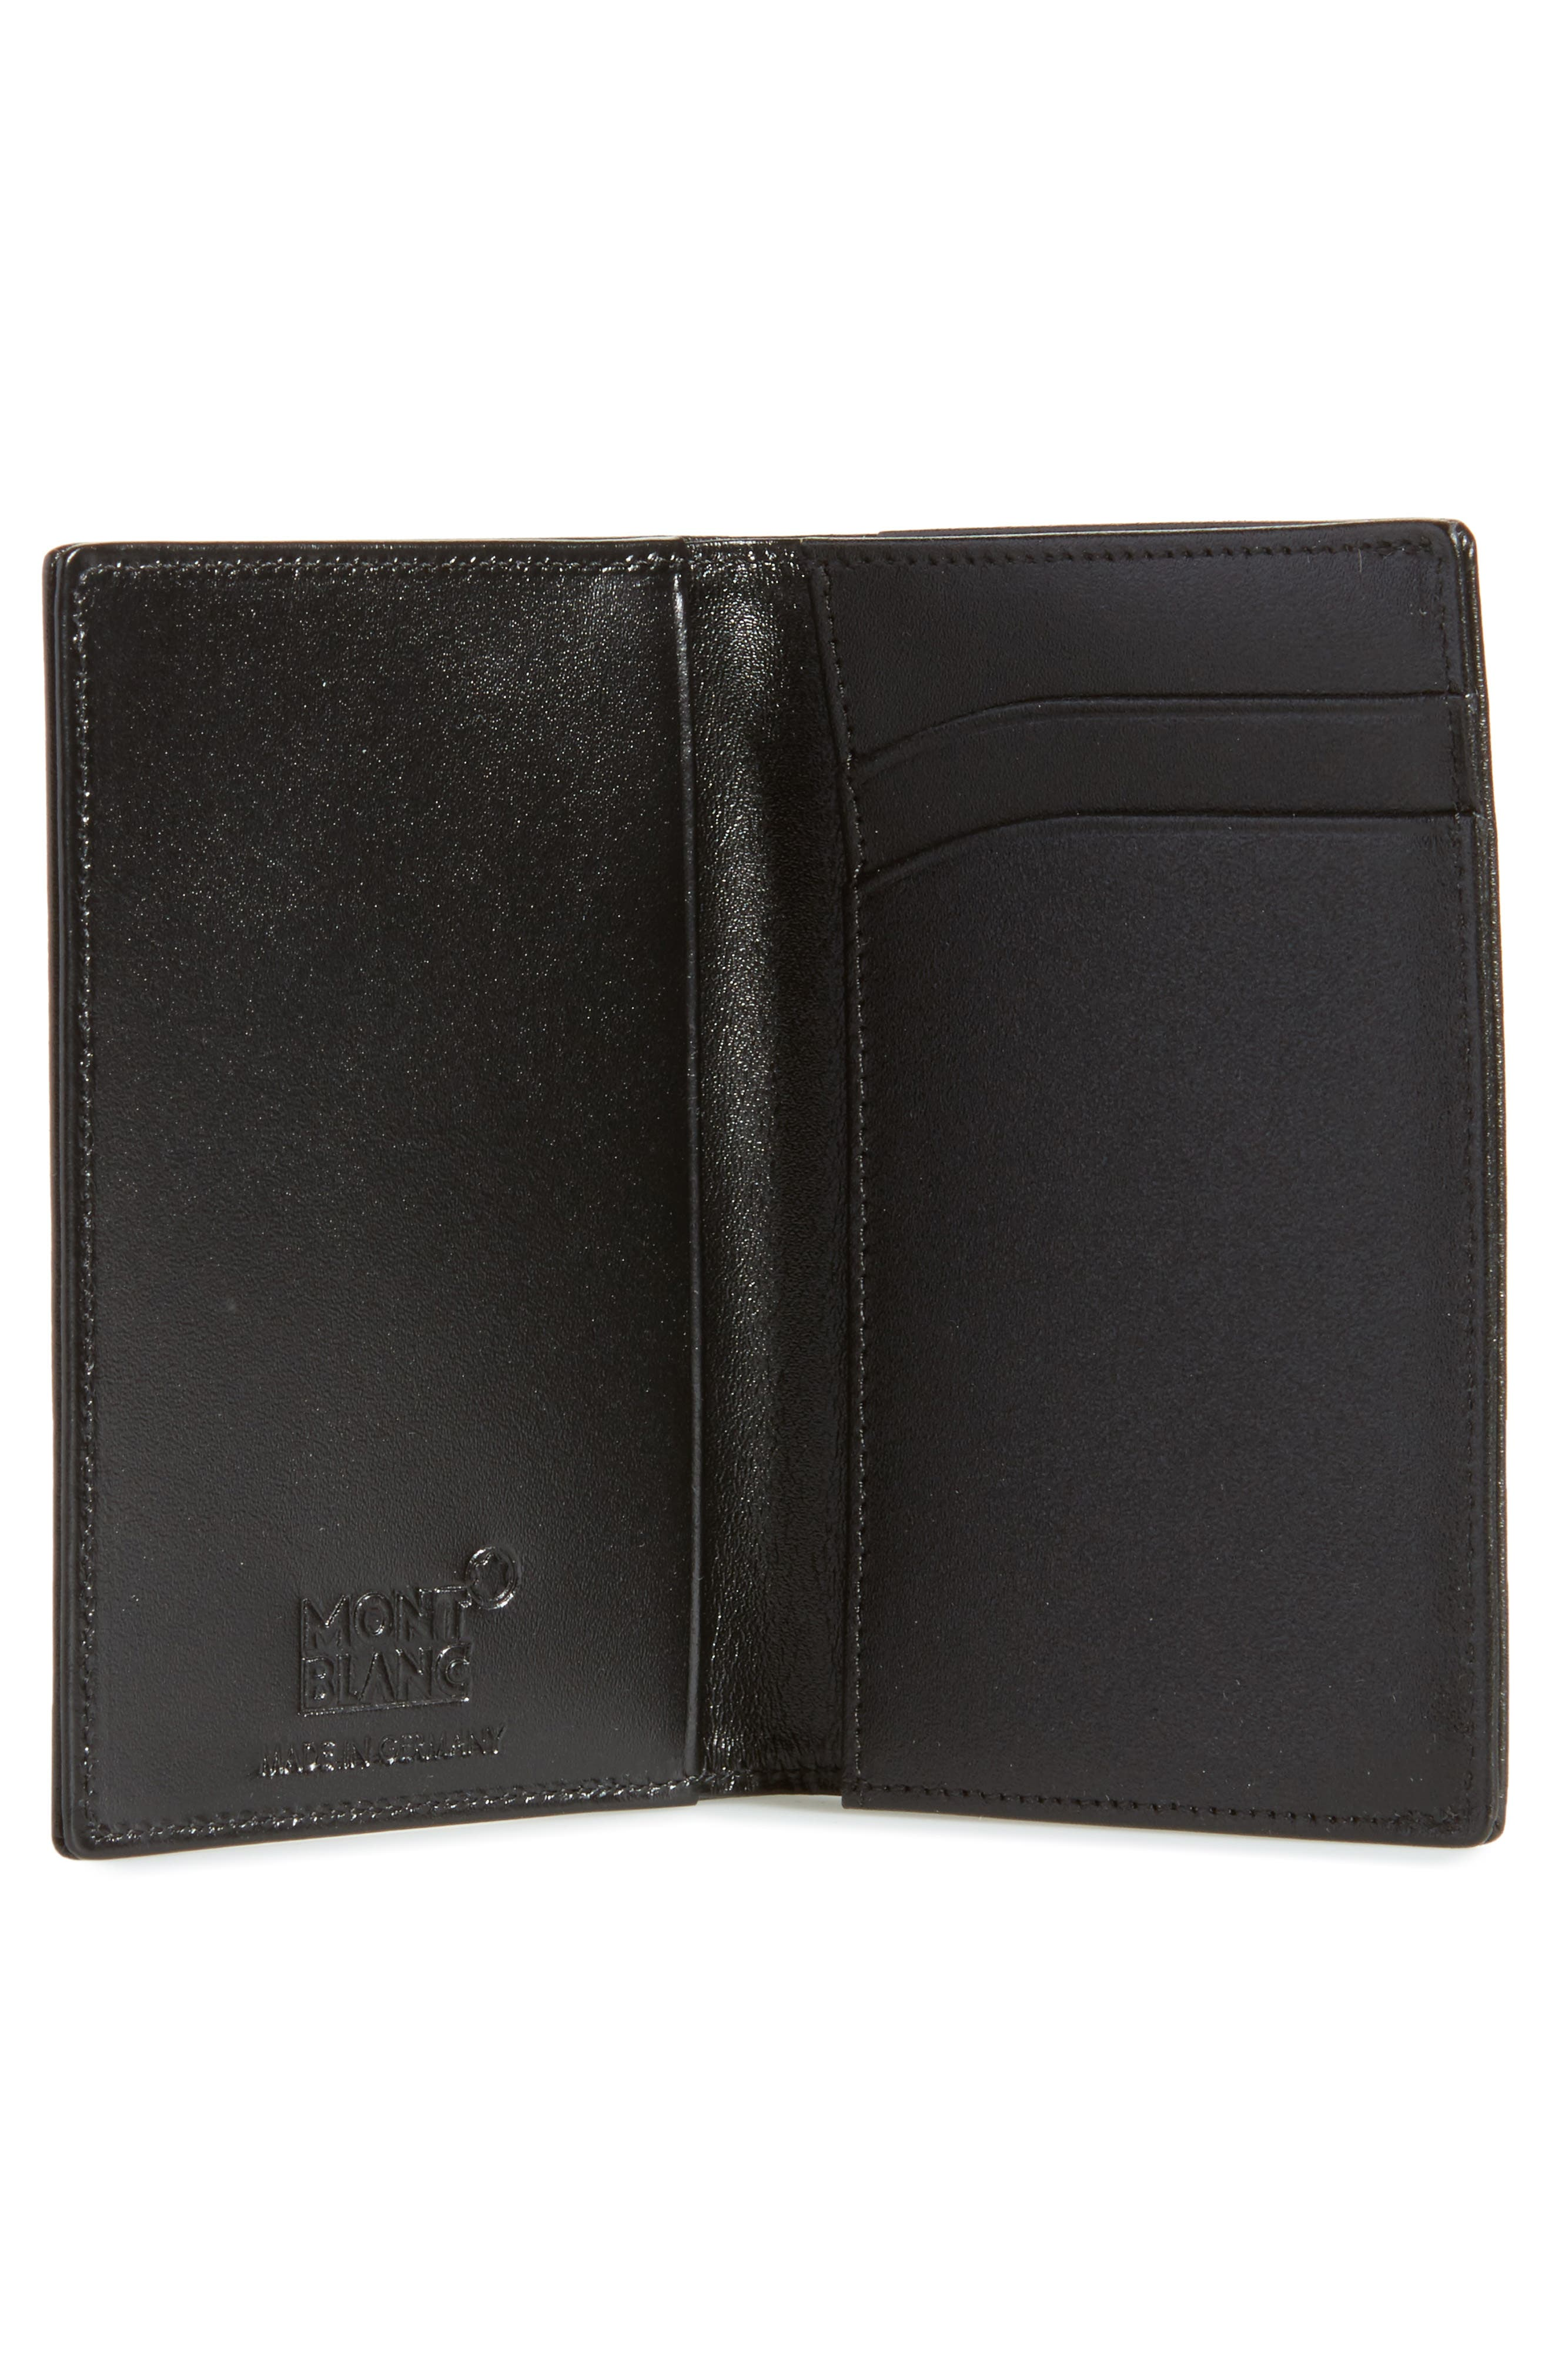 Meisterstück Leather Card Case,                             Alternate thumbnail 2, color,                             Black